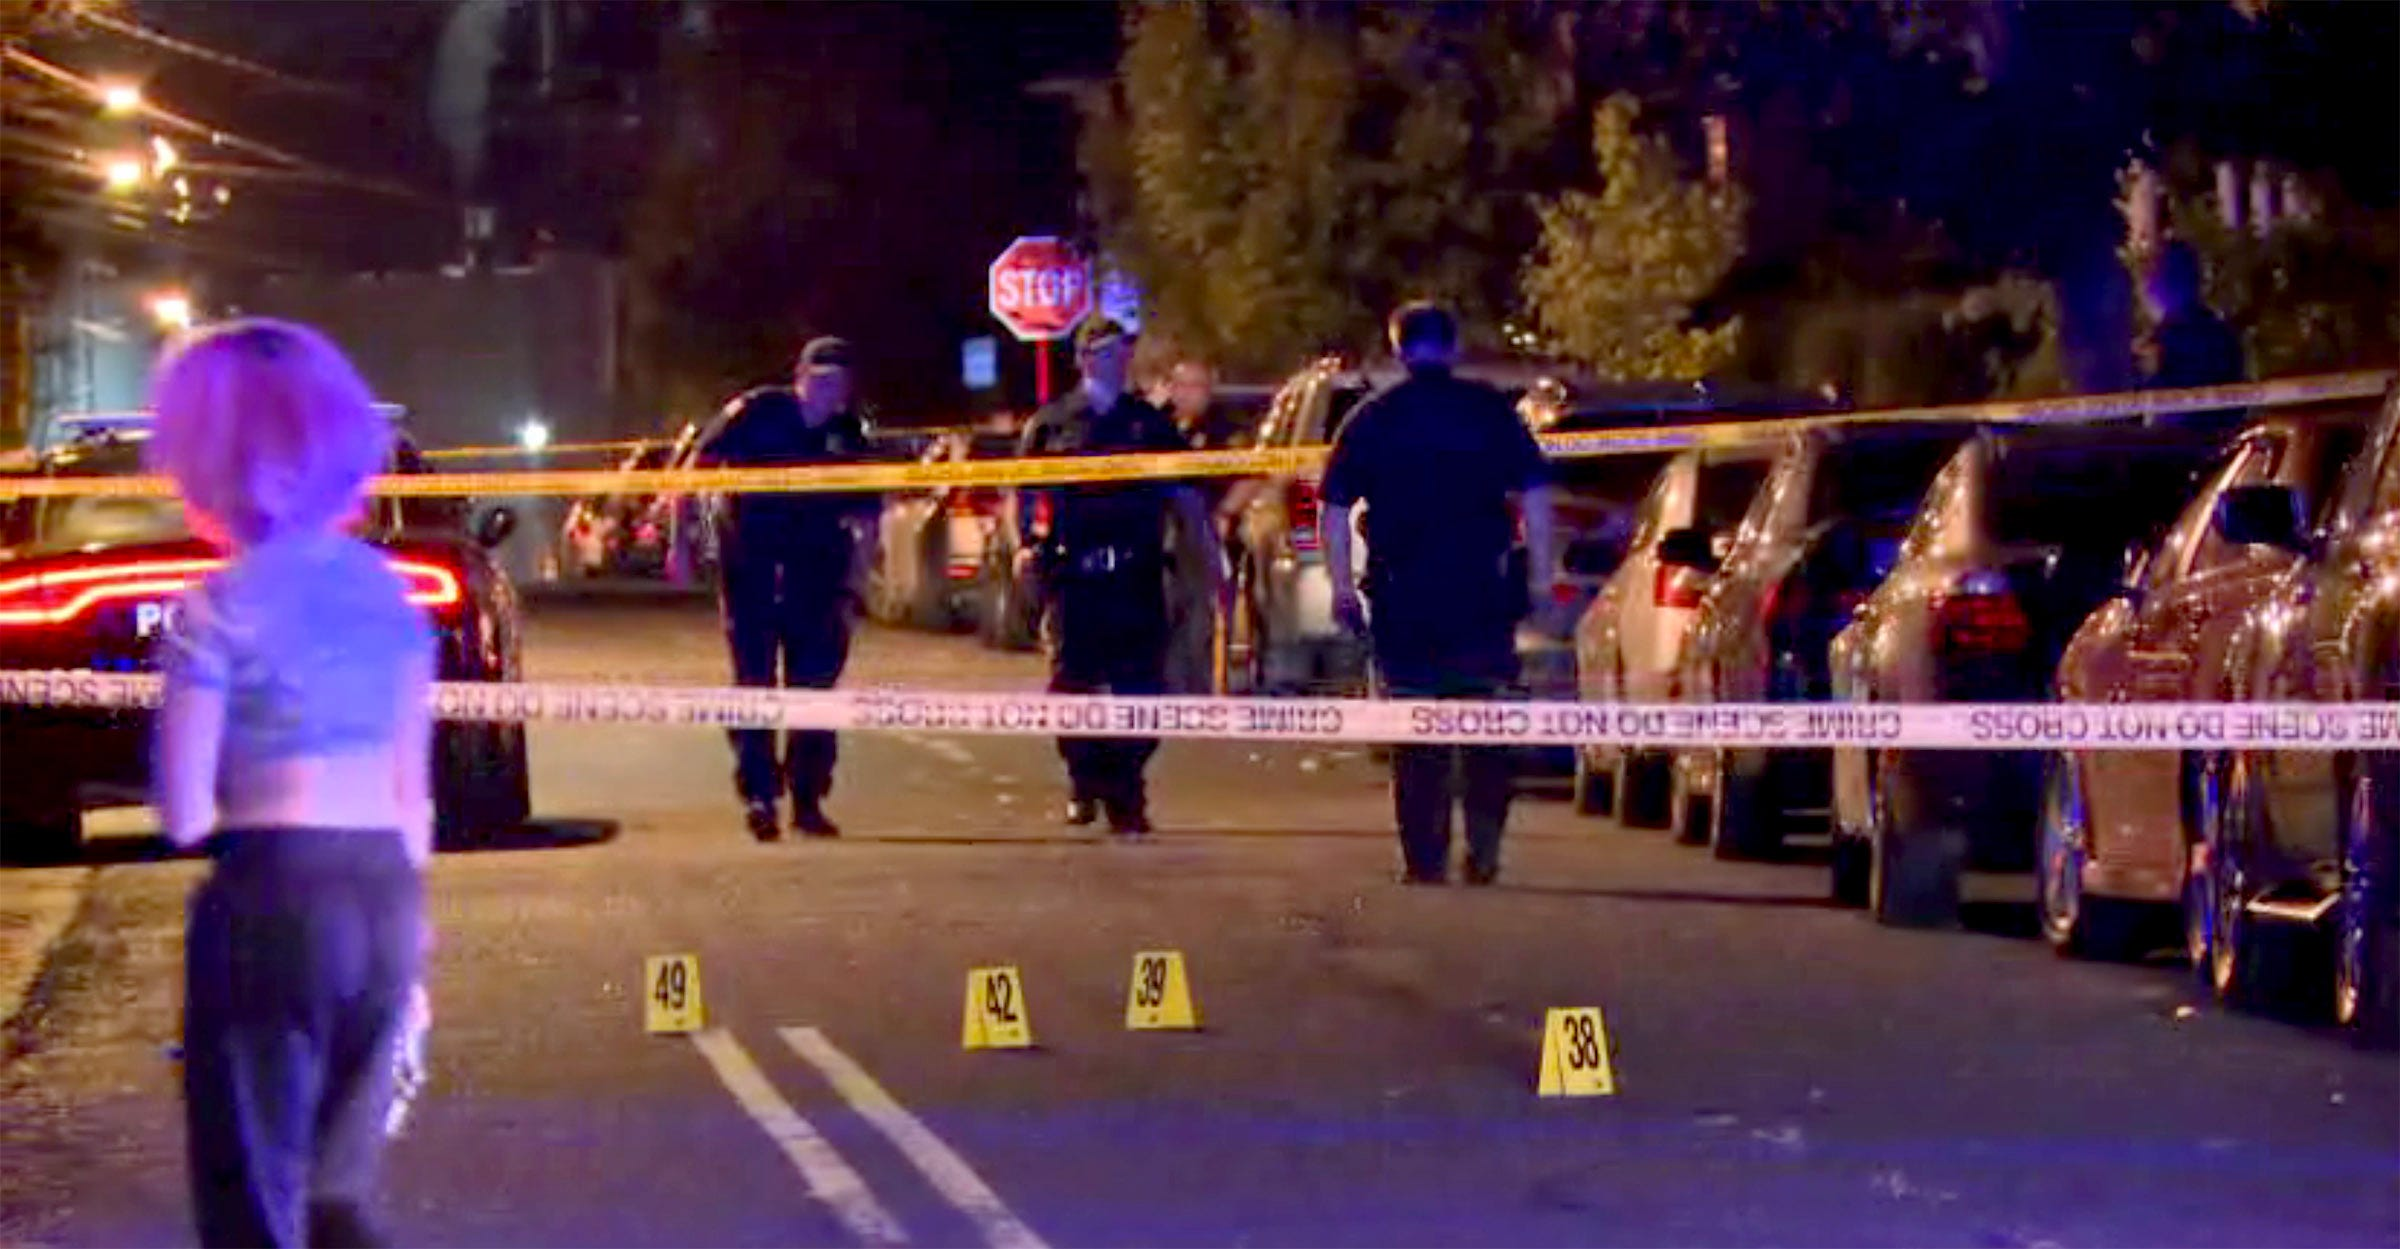 2 killed, 6 seriously injured in New Jersey shooting near Rutgers University campus